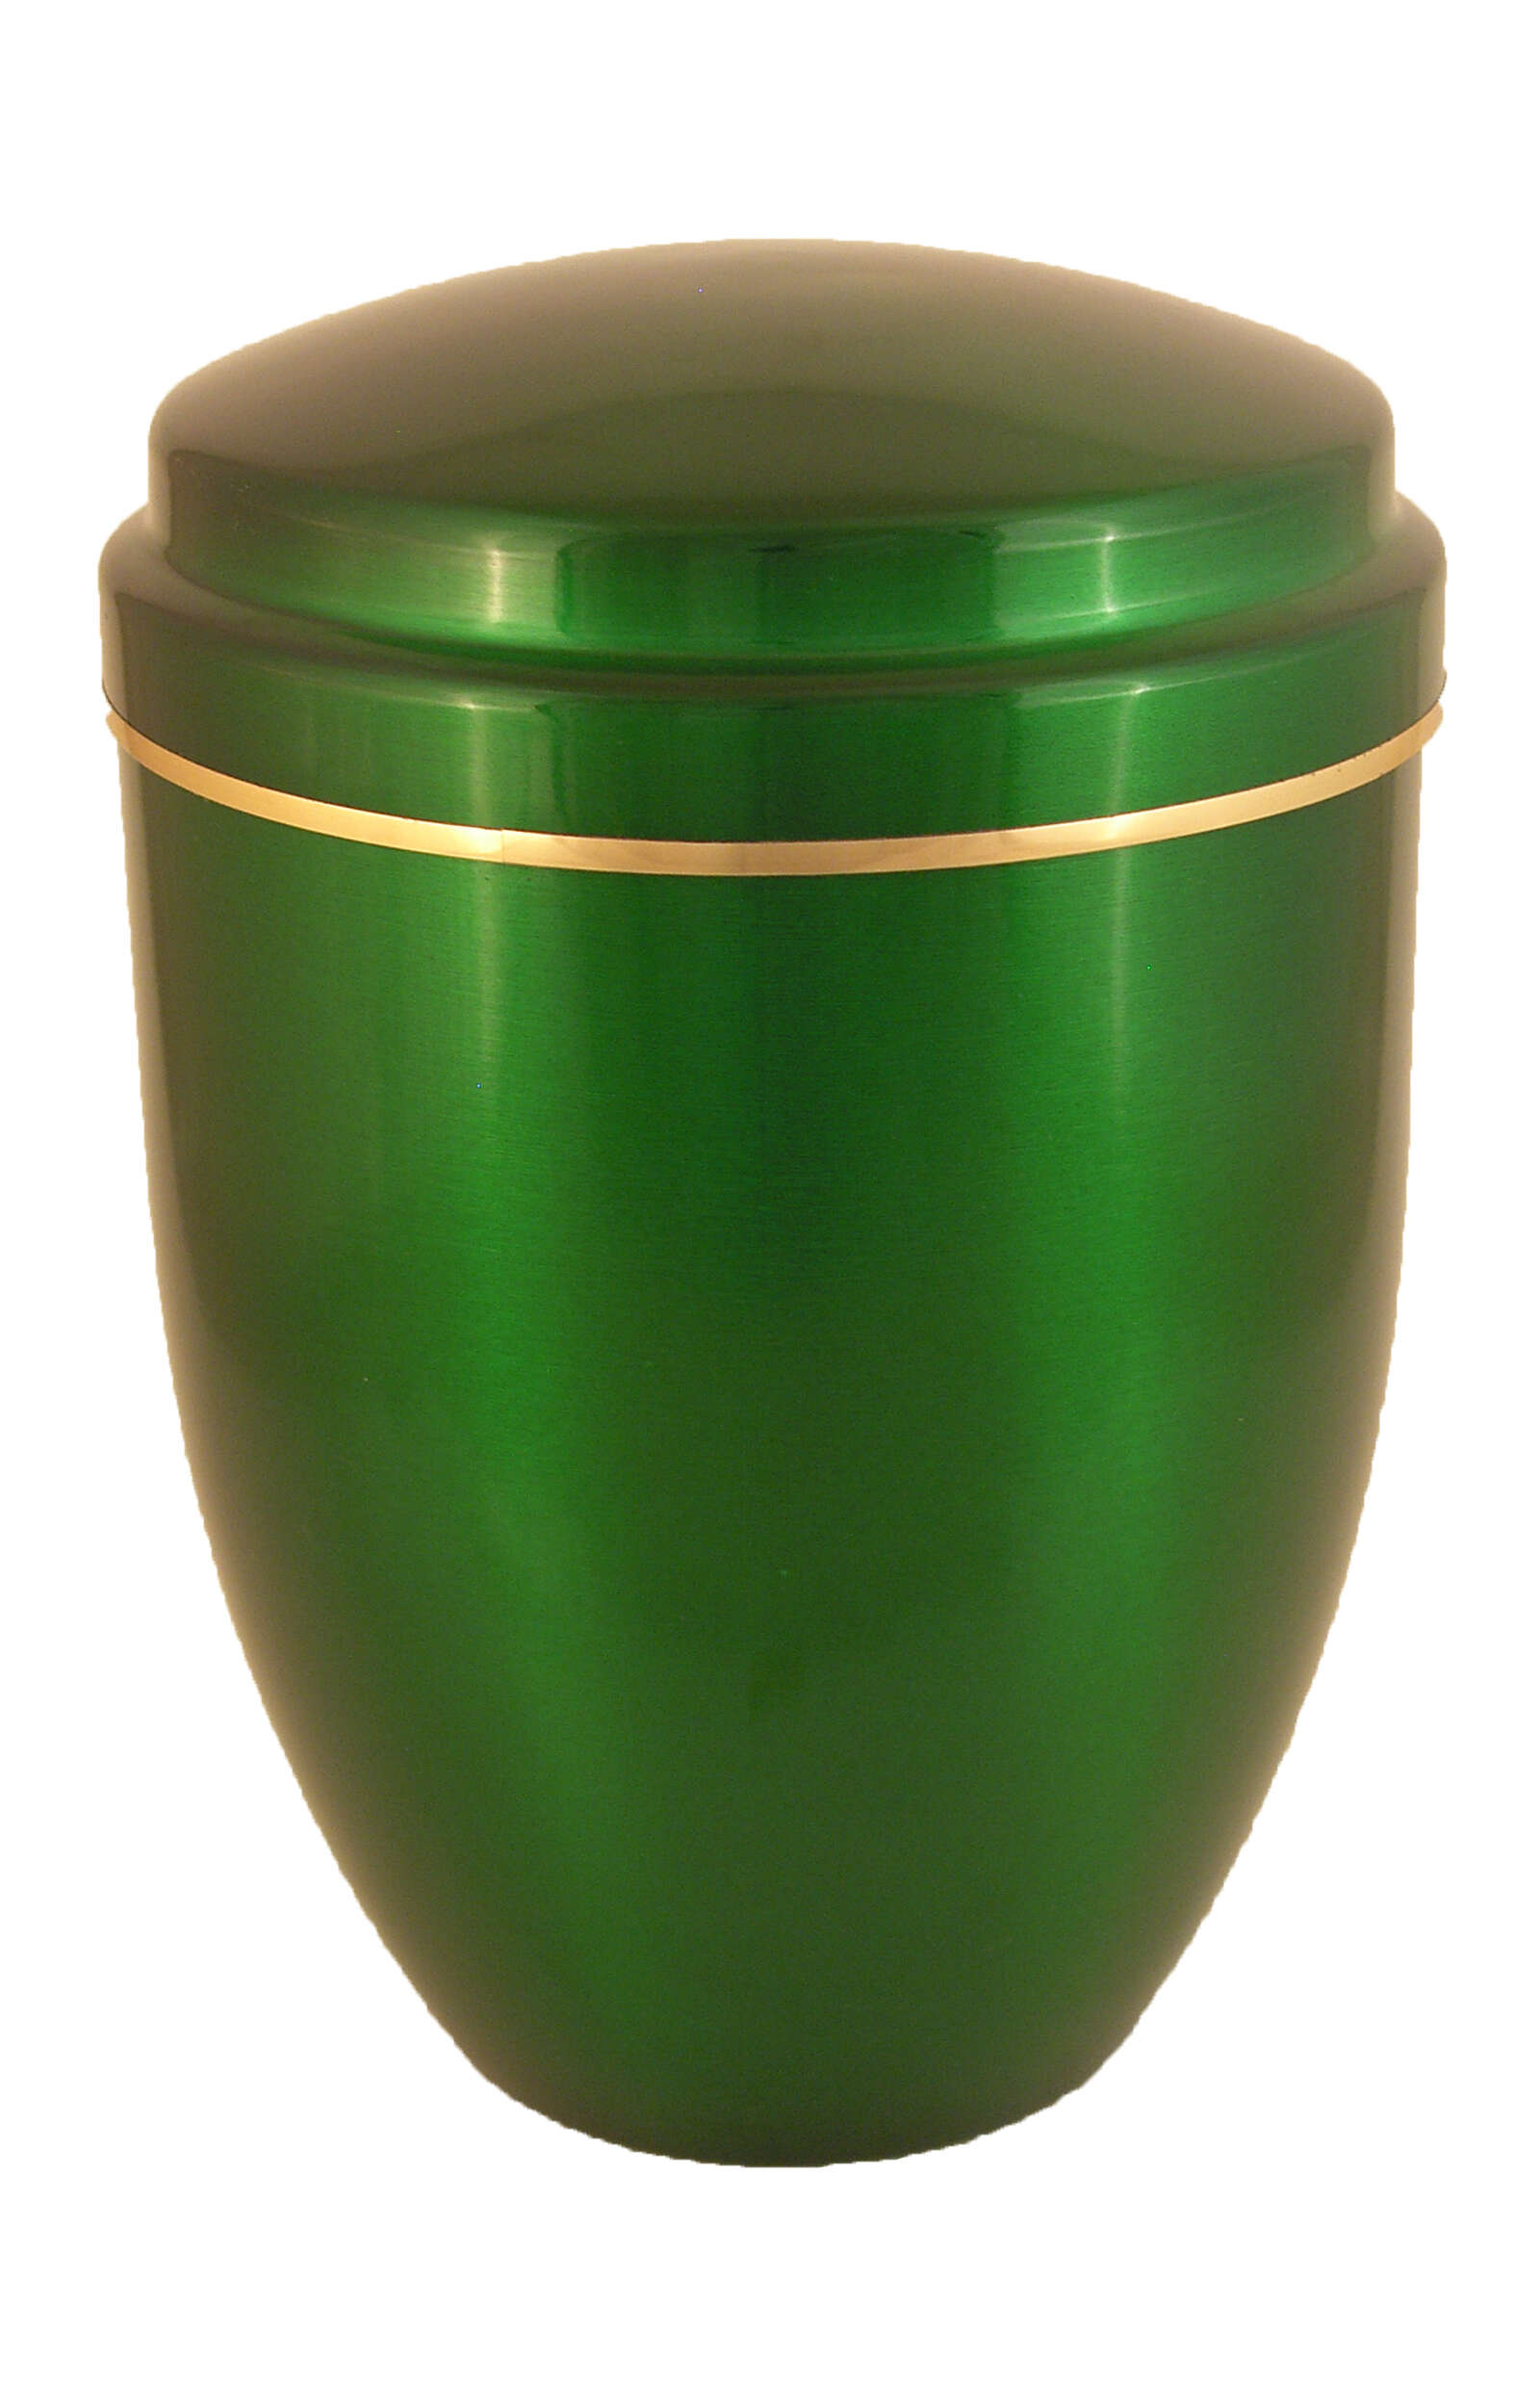 en AG5598 funeral urns on sale metall urn green light green